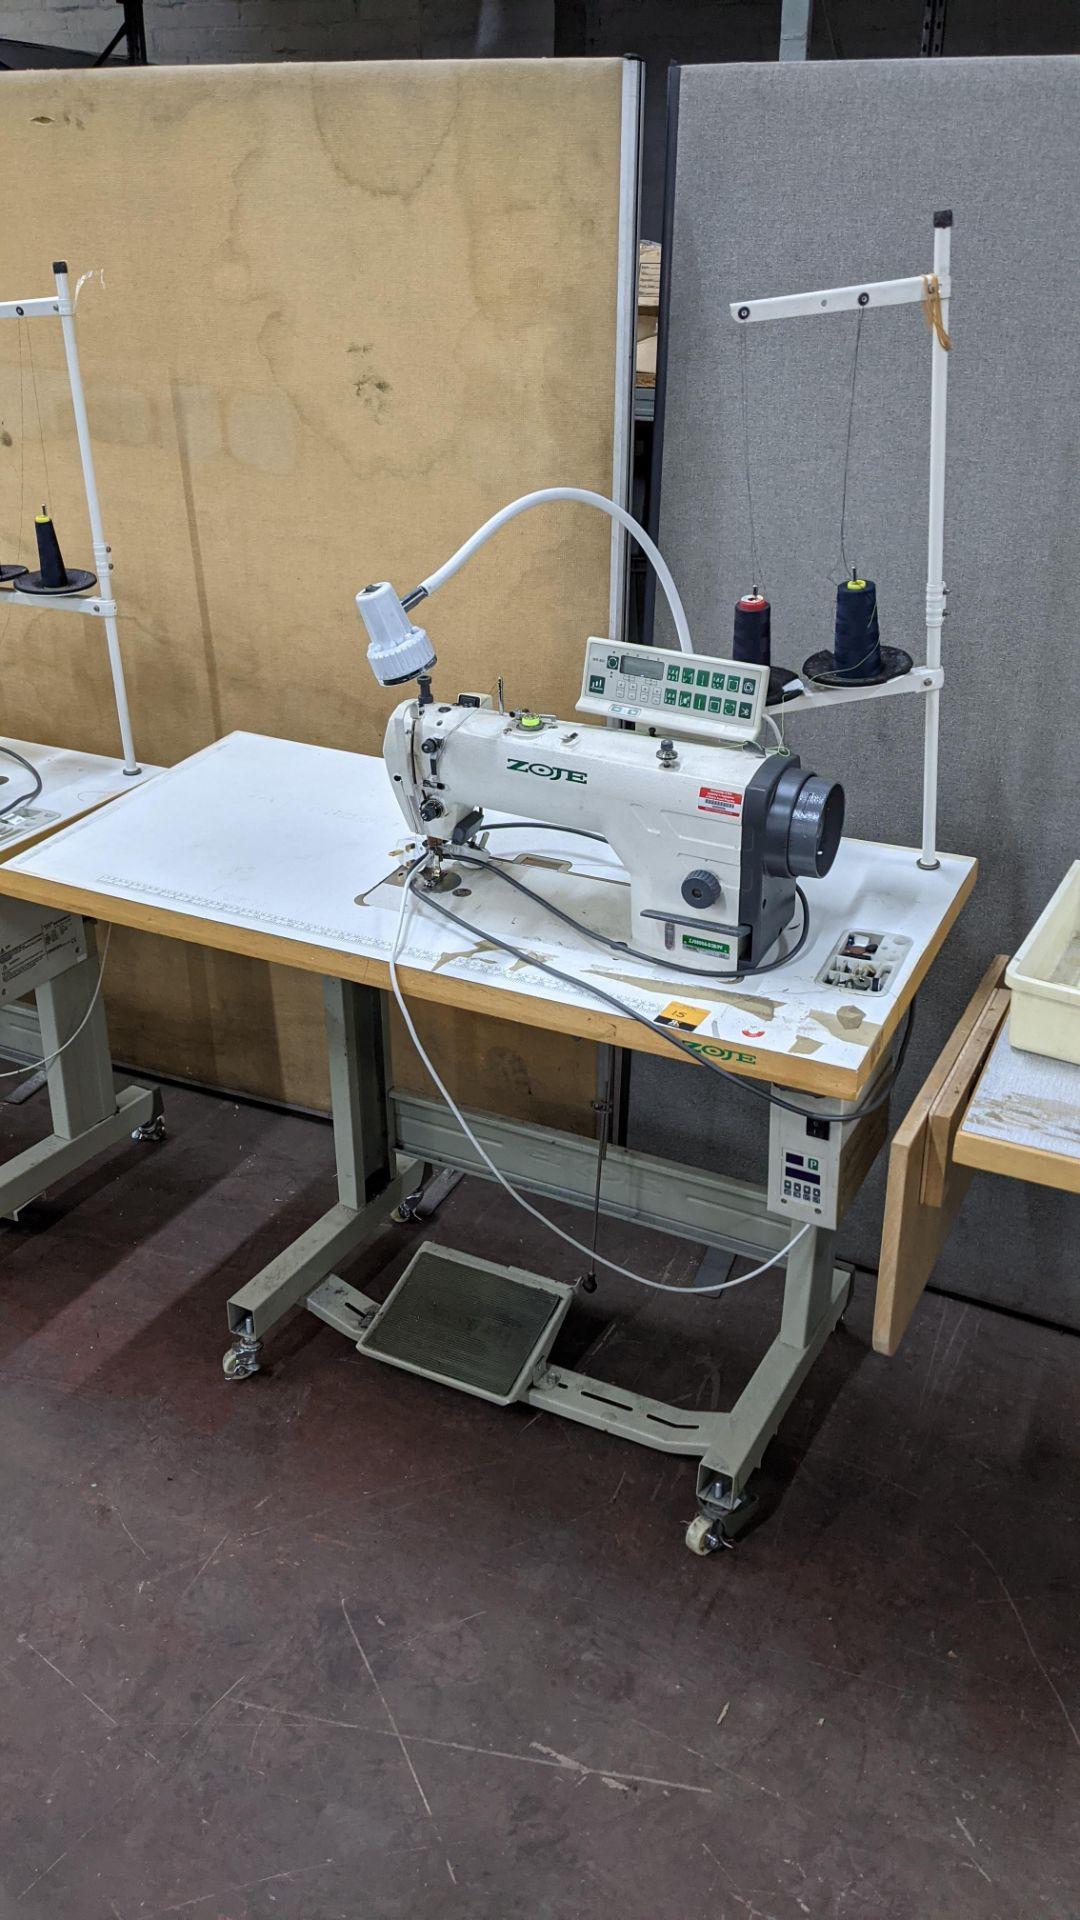 Zoje model ZJ9800A-D3B/PF lockstitch sewing machine with model WR-501 digital controller - Image 3 of 14